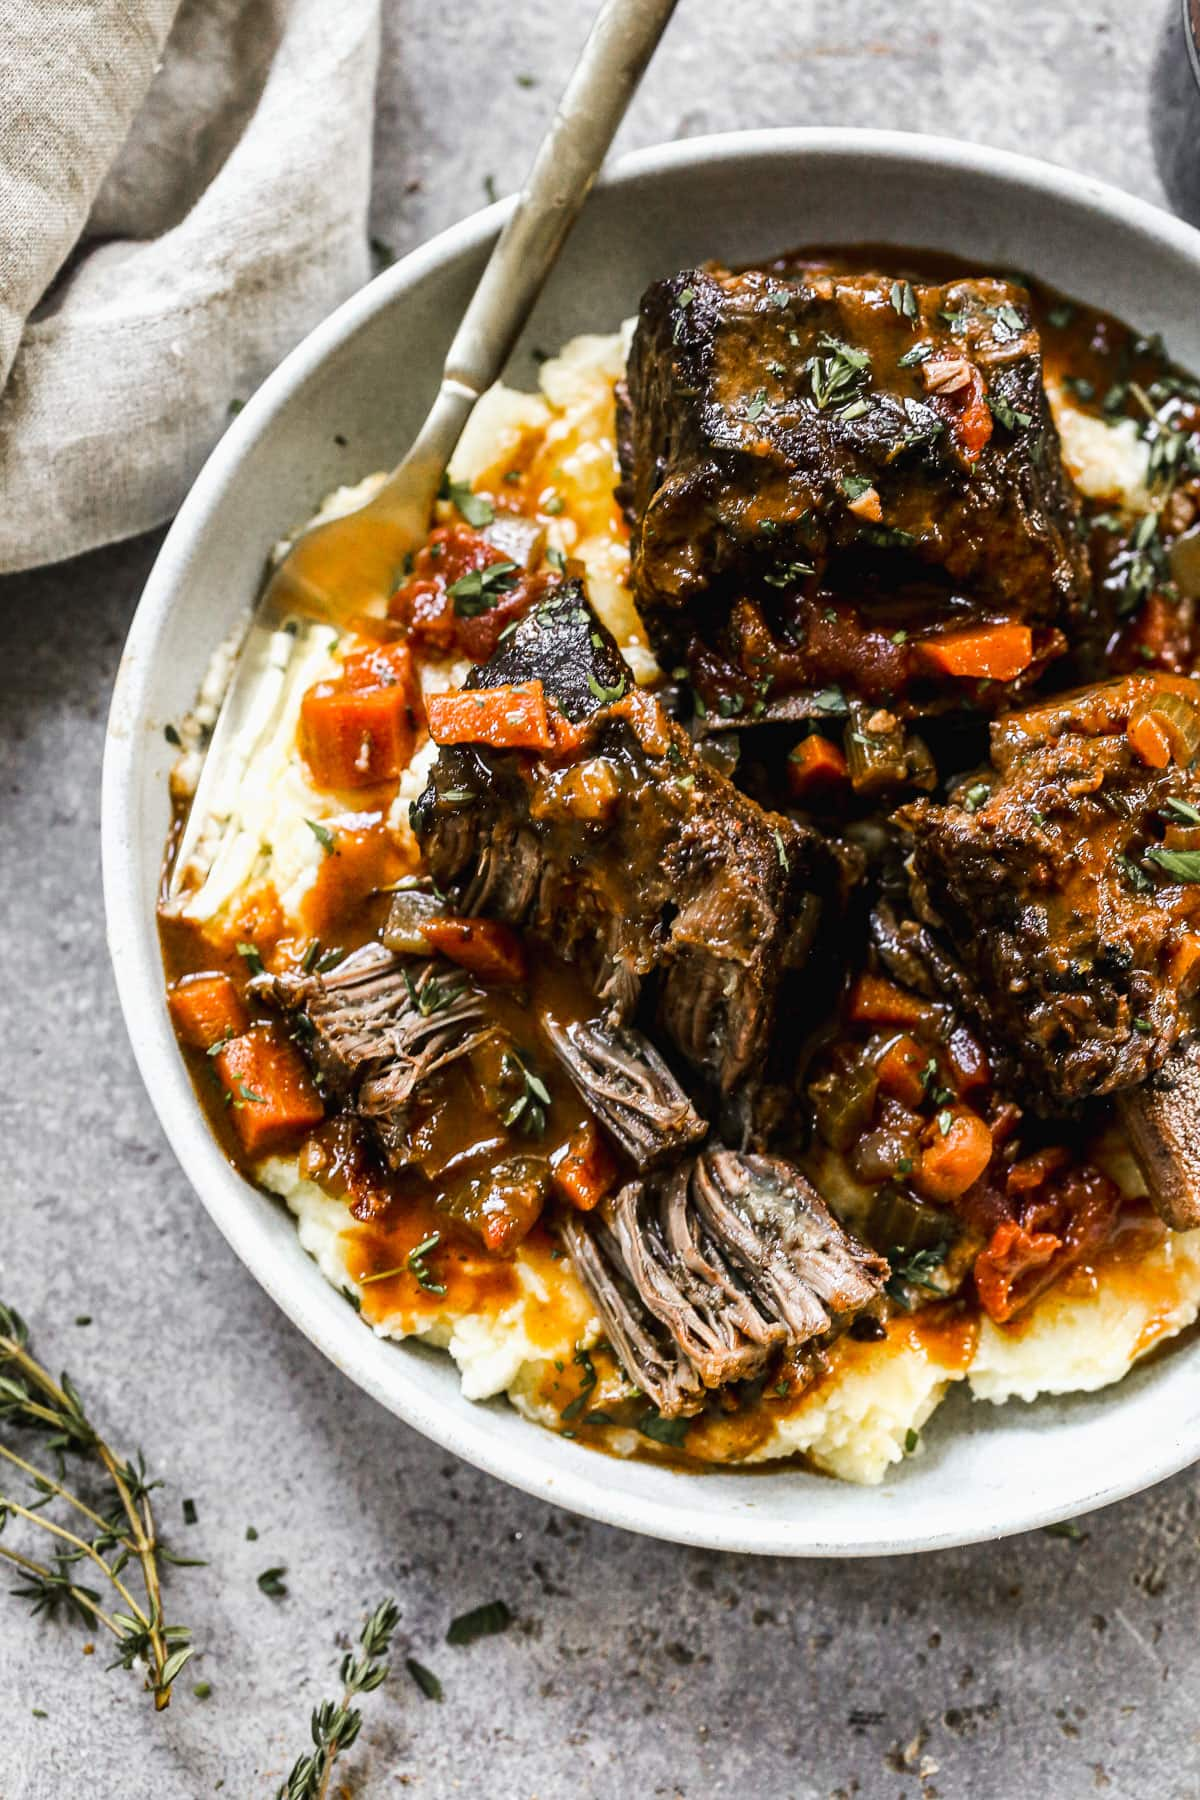 Red Wine Braised Short Rib Pasta with Horseradish Cream